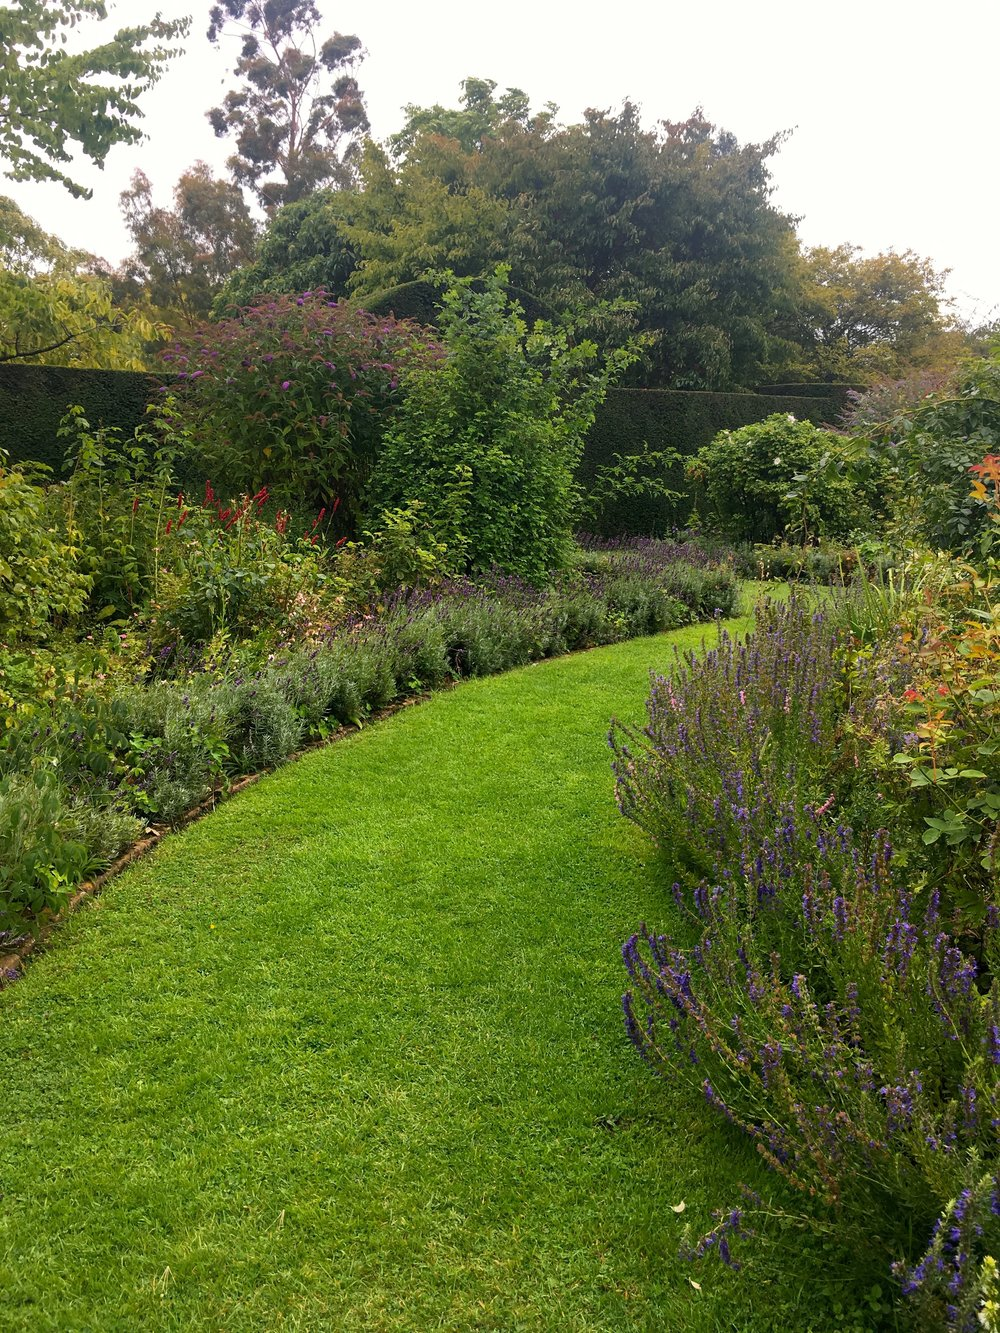 Exploring the herb beds in the knot garden at Helmington Hall